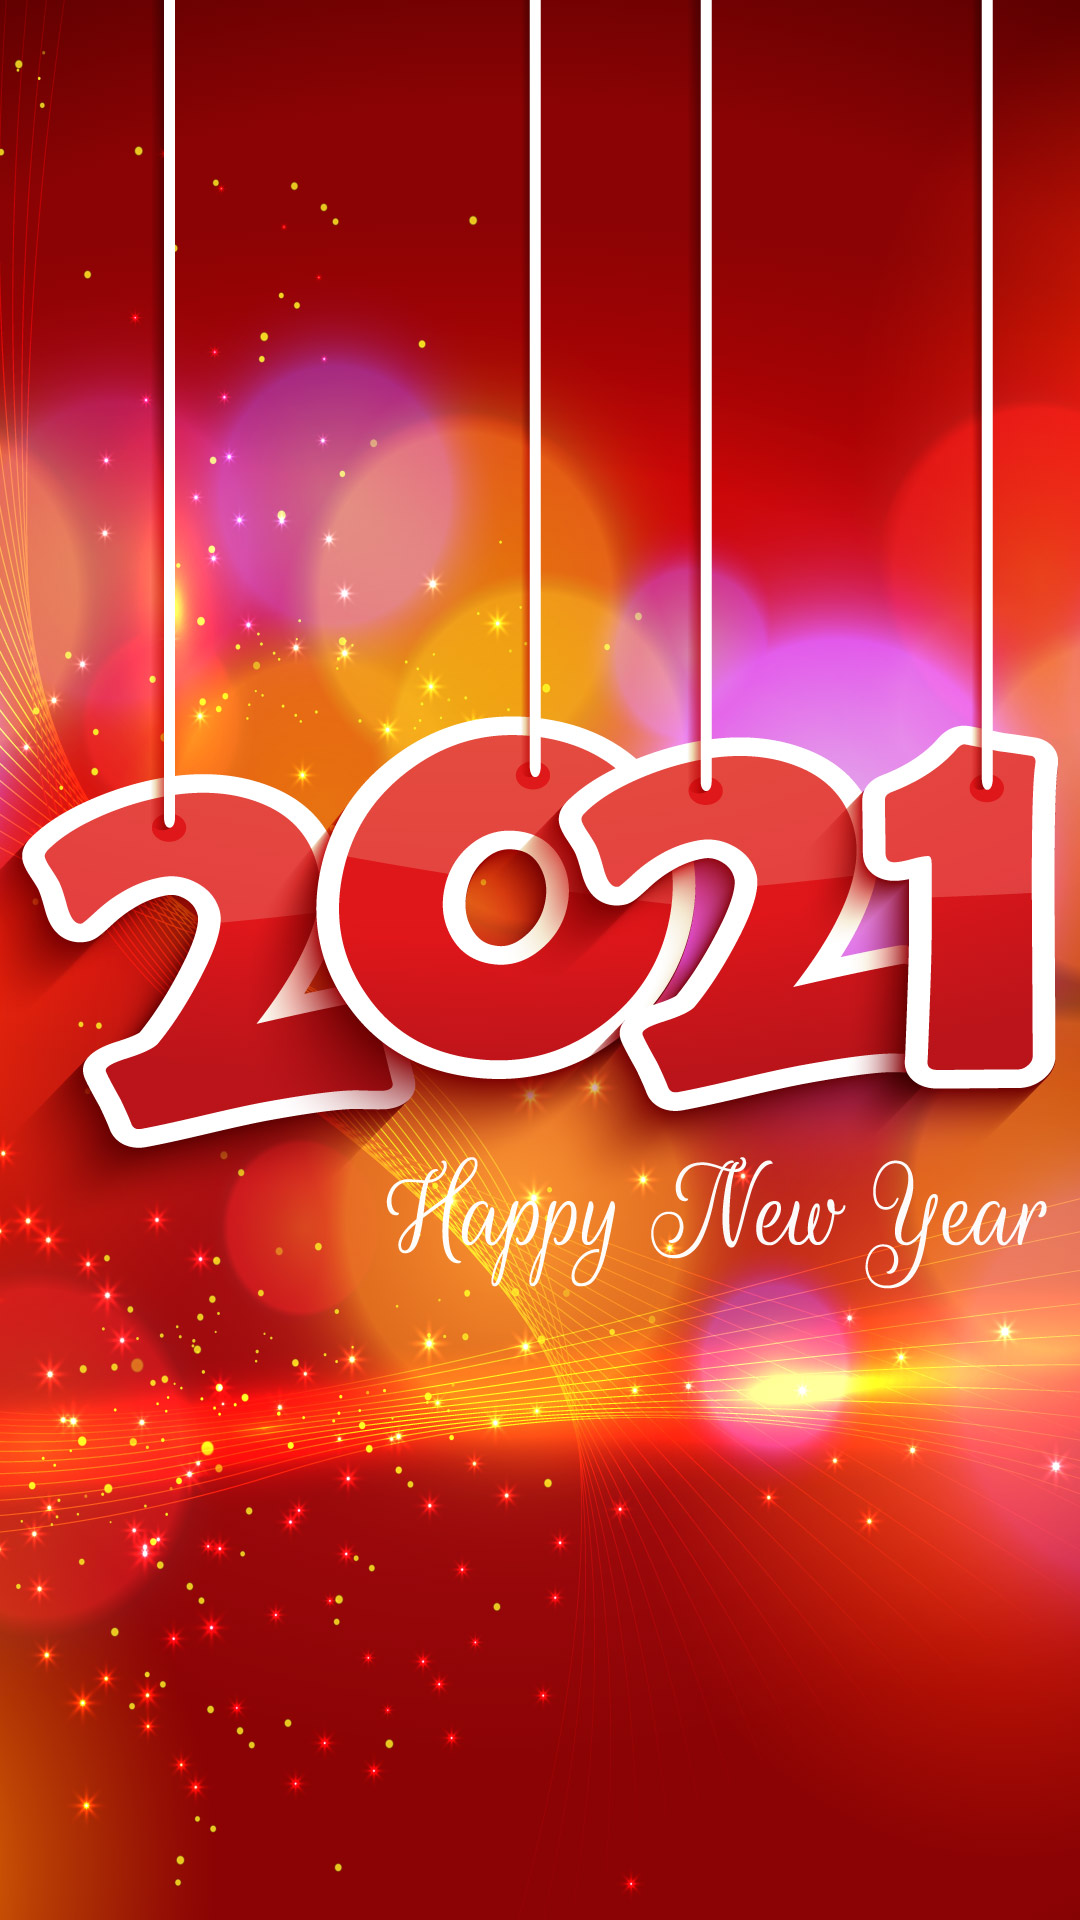 Happy New Year 2021 Red Background